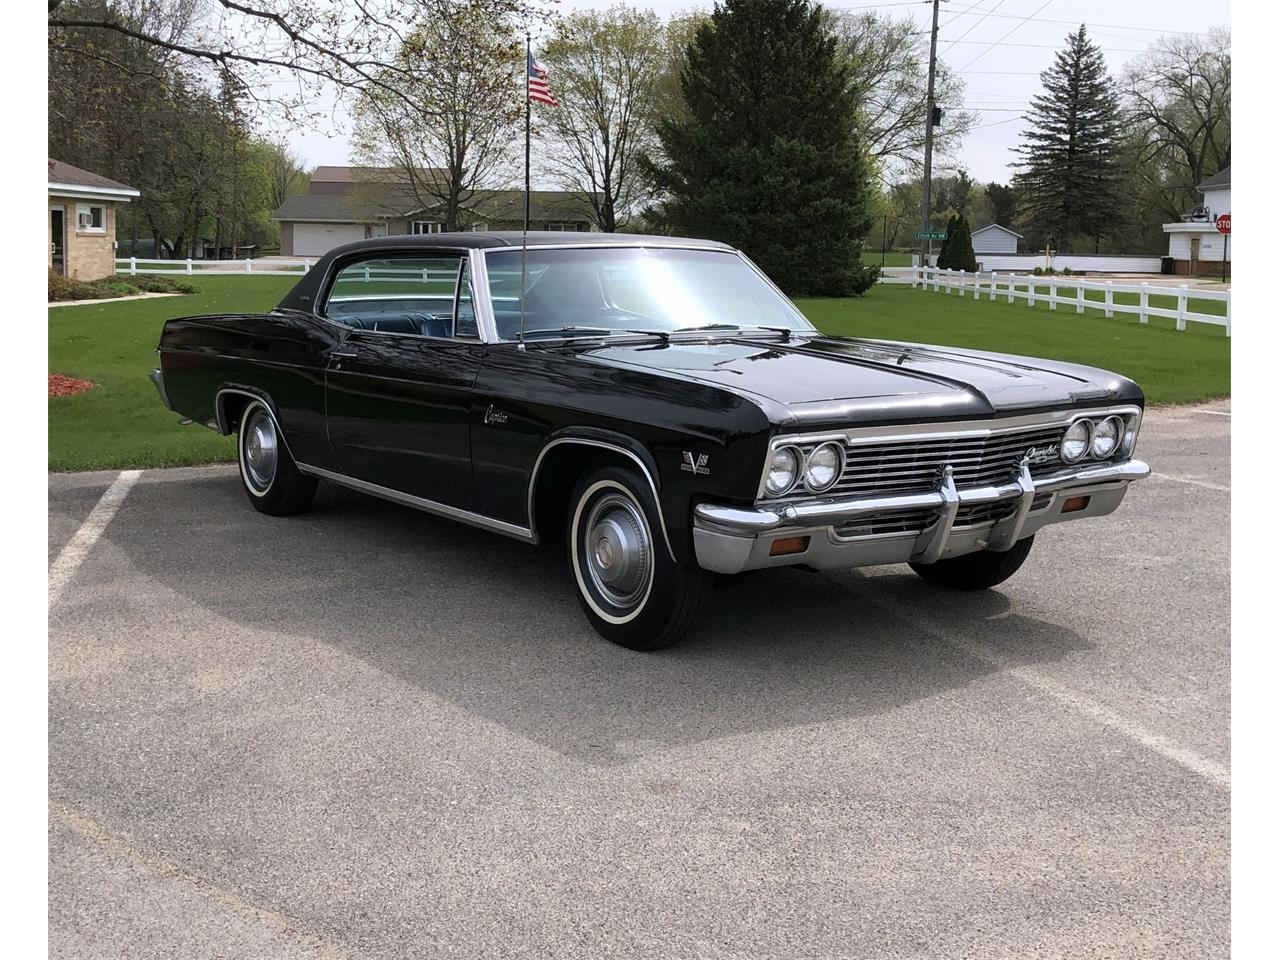 1966 Chevrolet Caprice (CC-1357001) for sale in Maple Lake, Minnesota